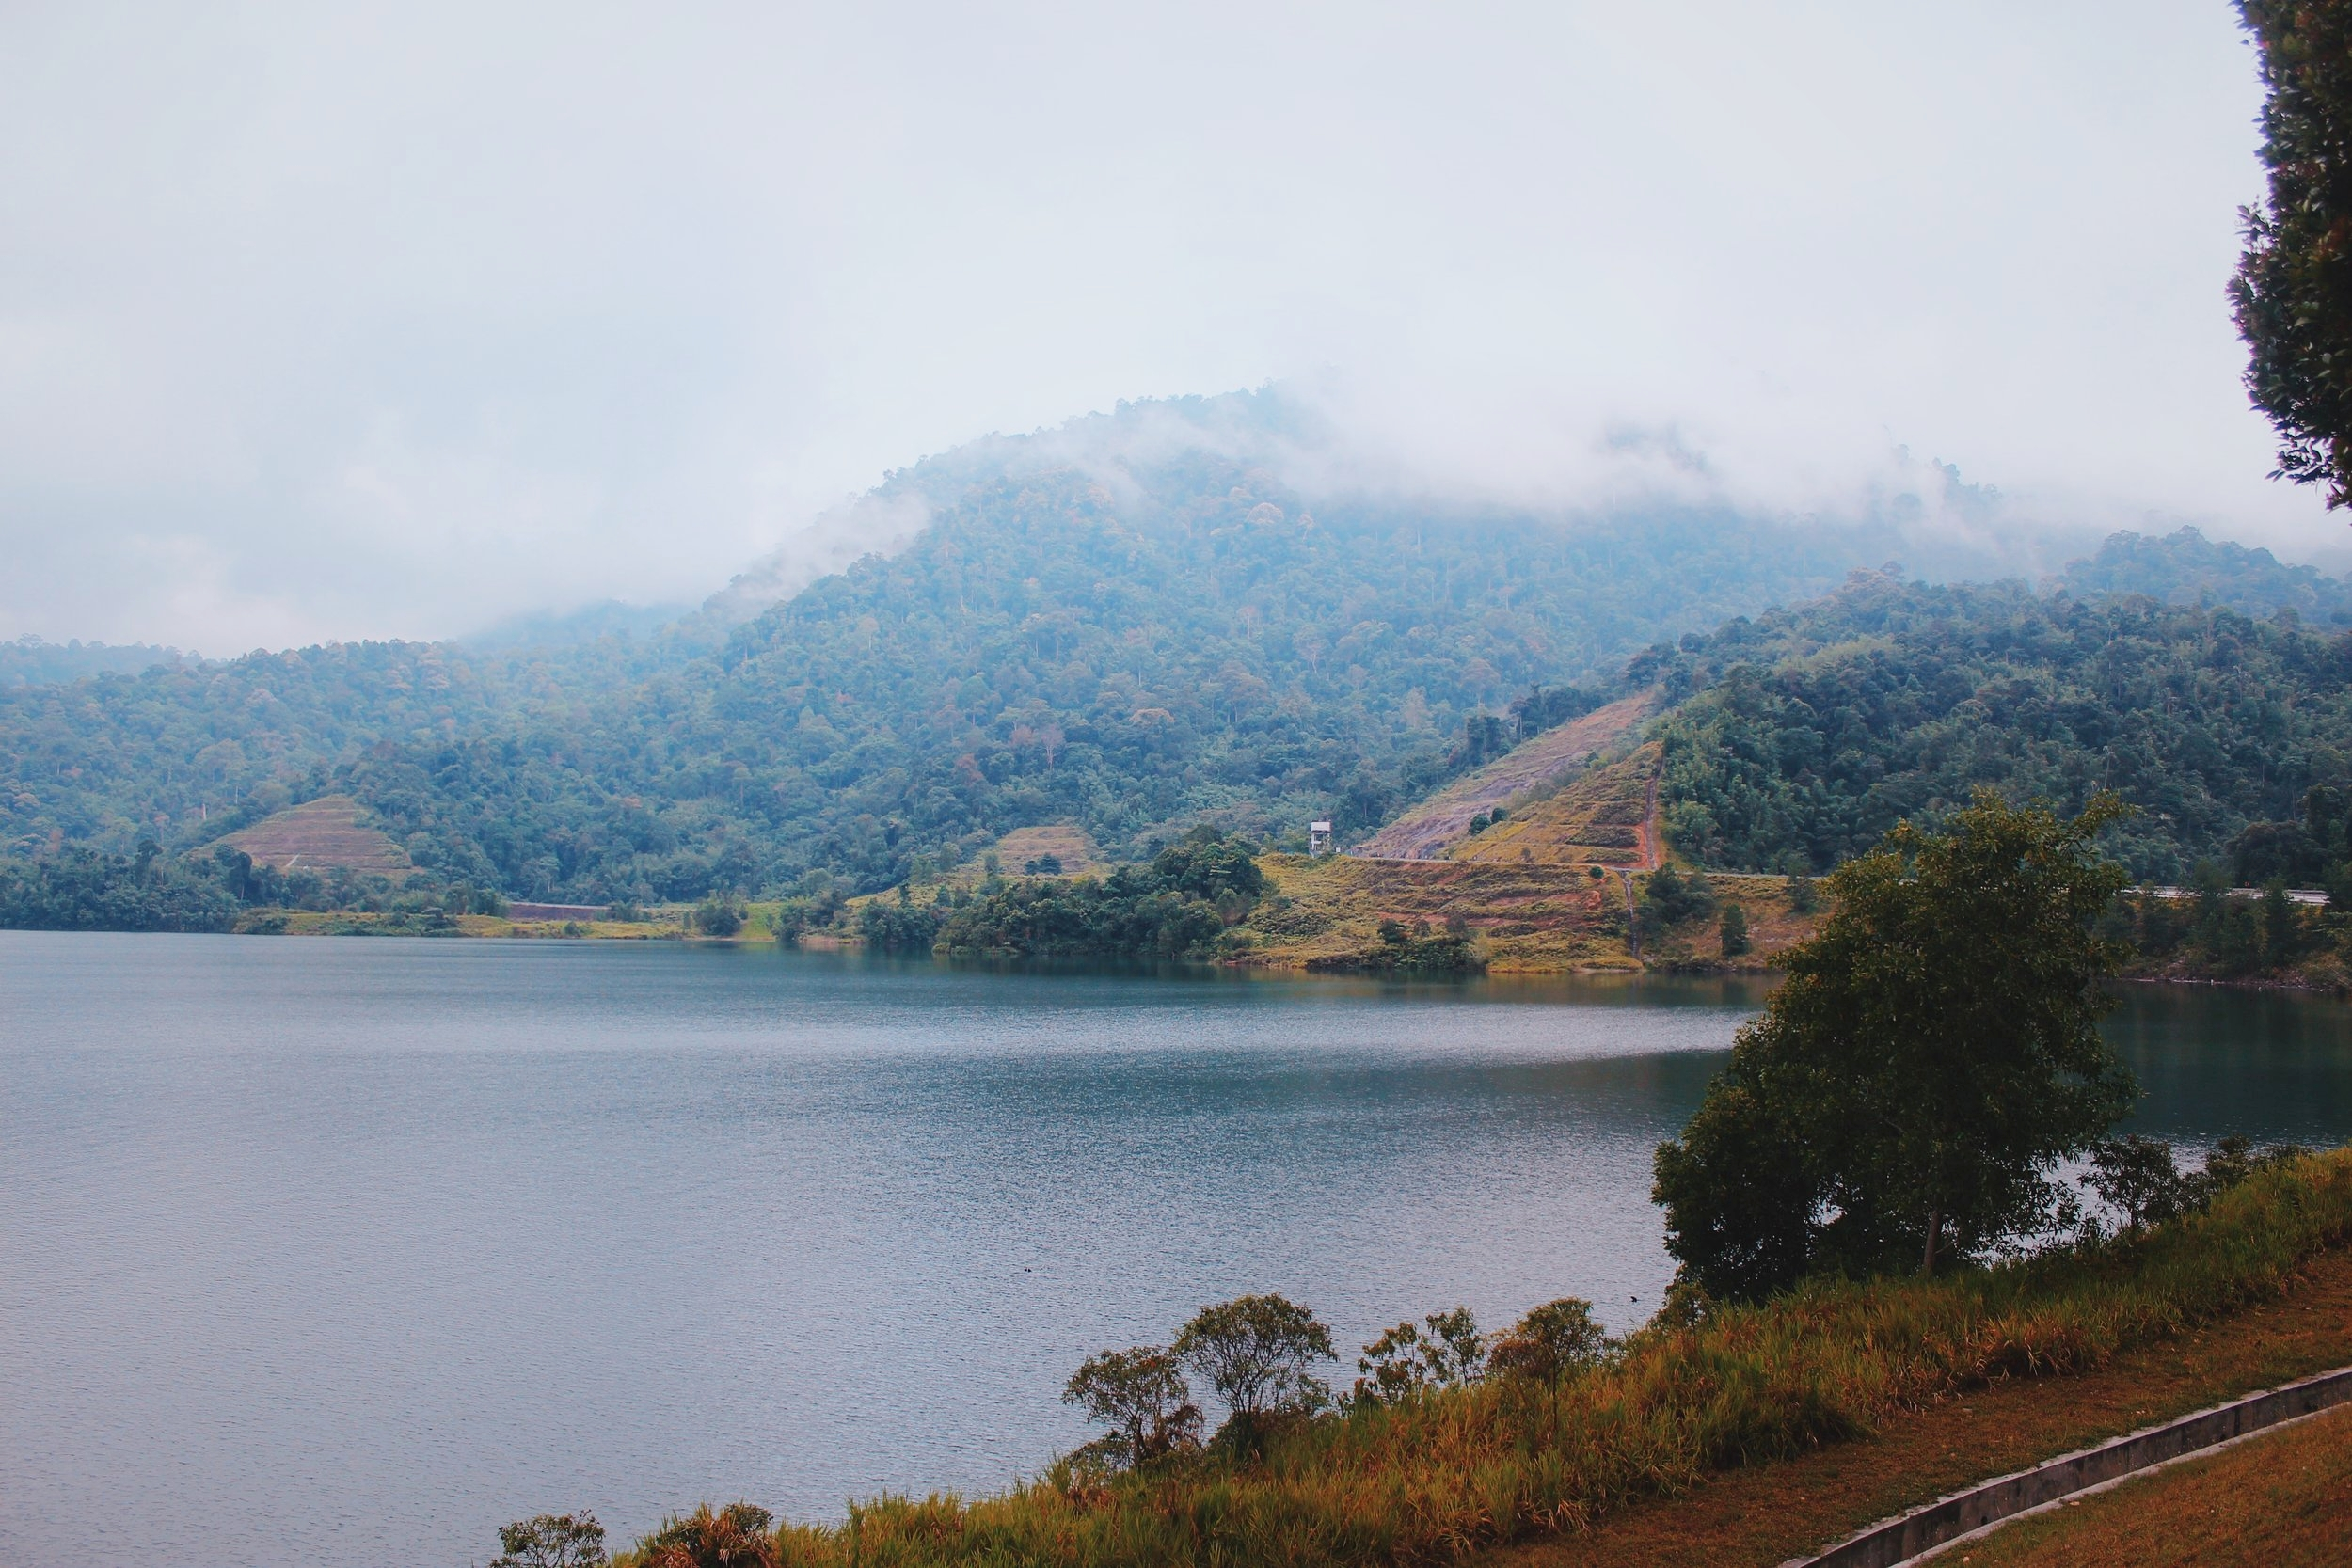 A view next to the Sungai Selangor Dam